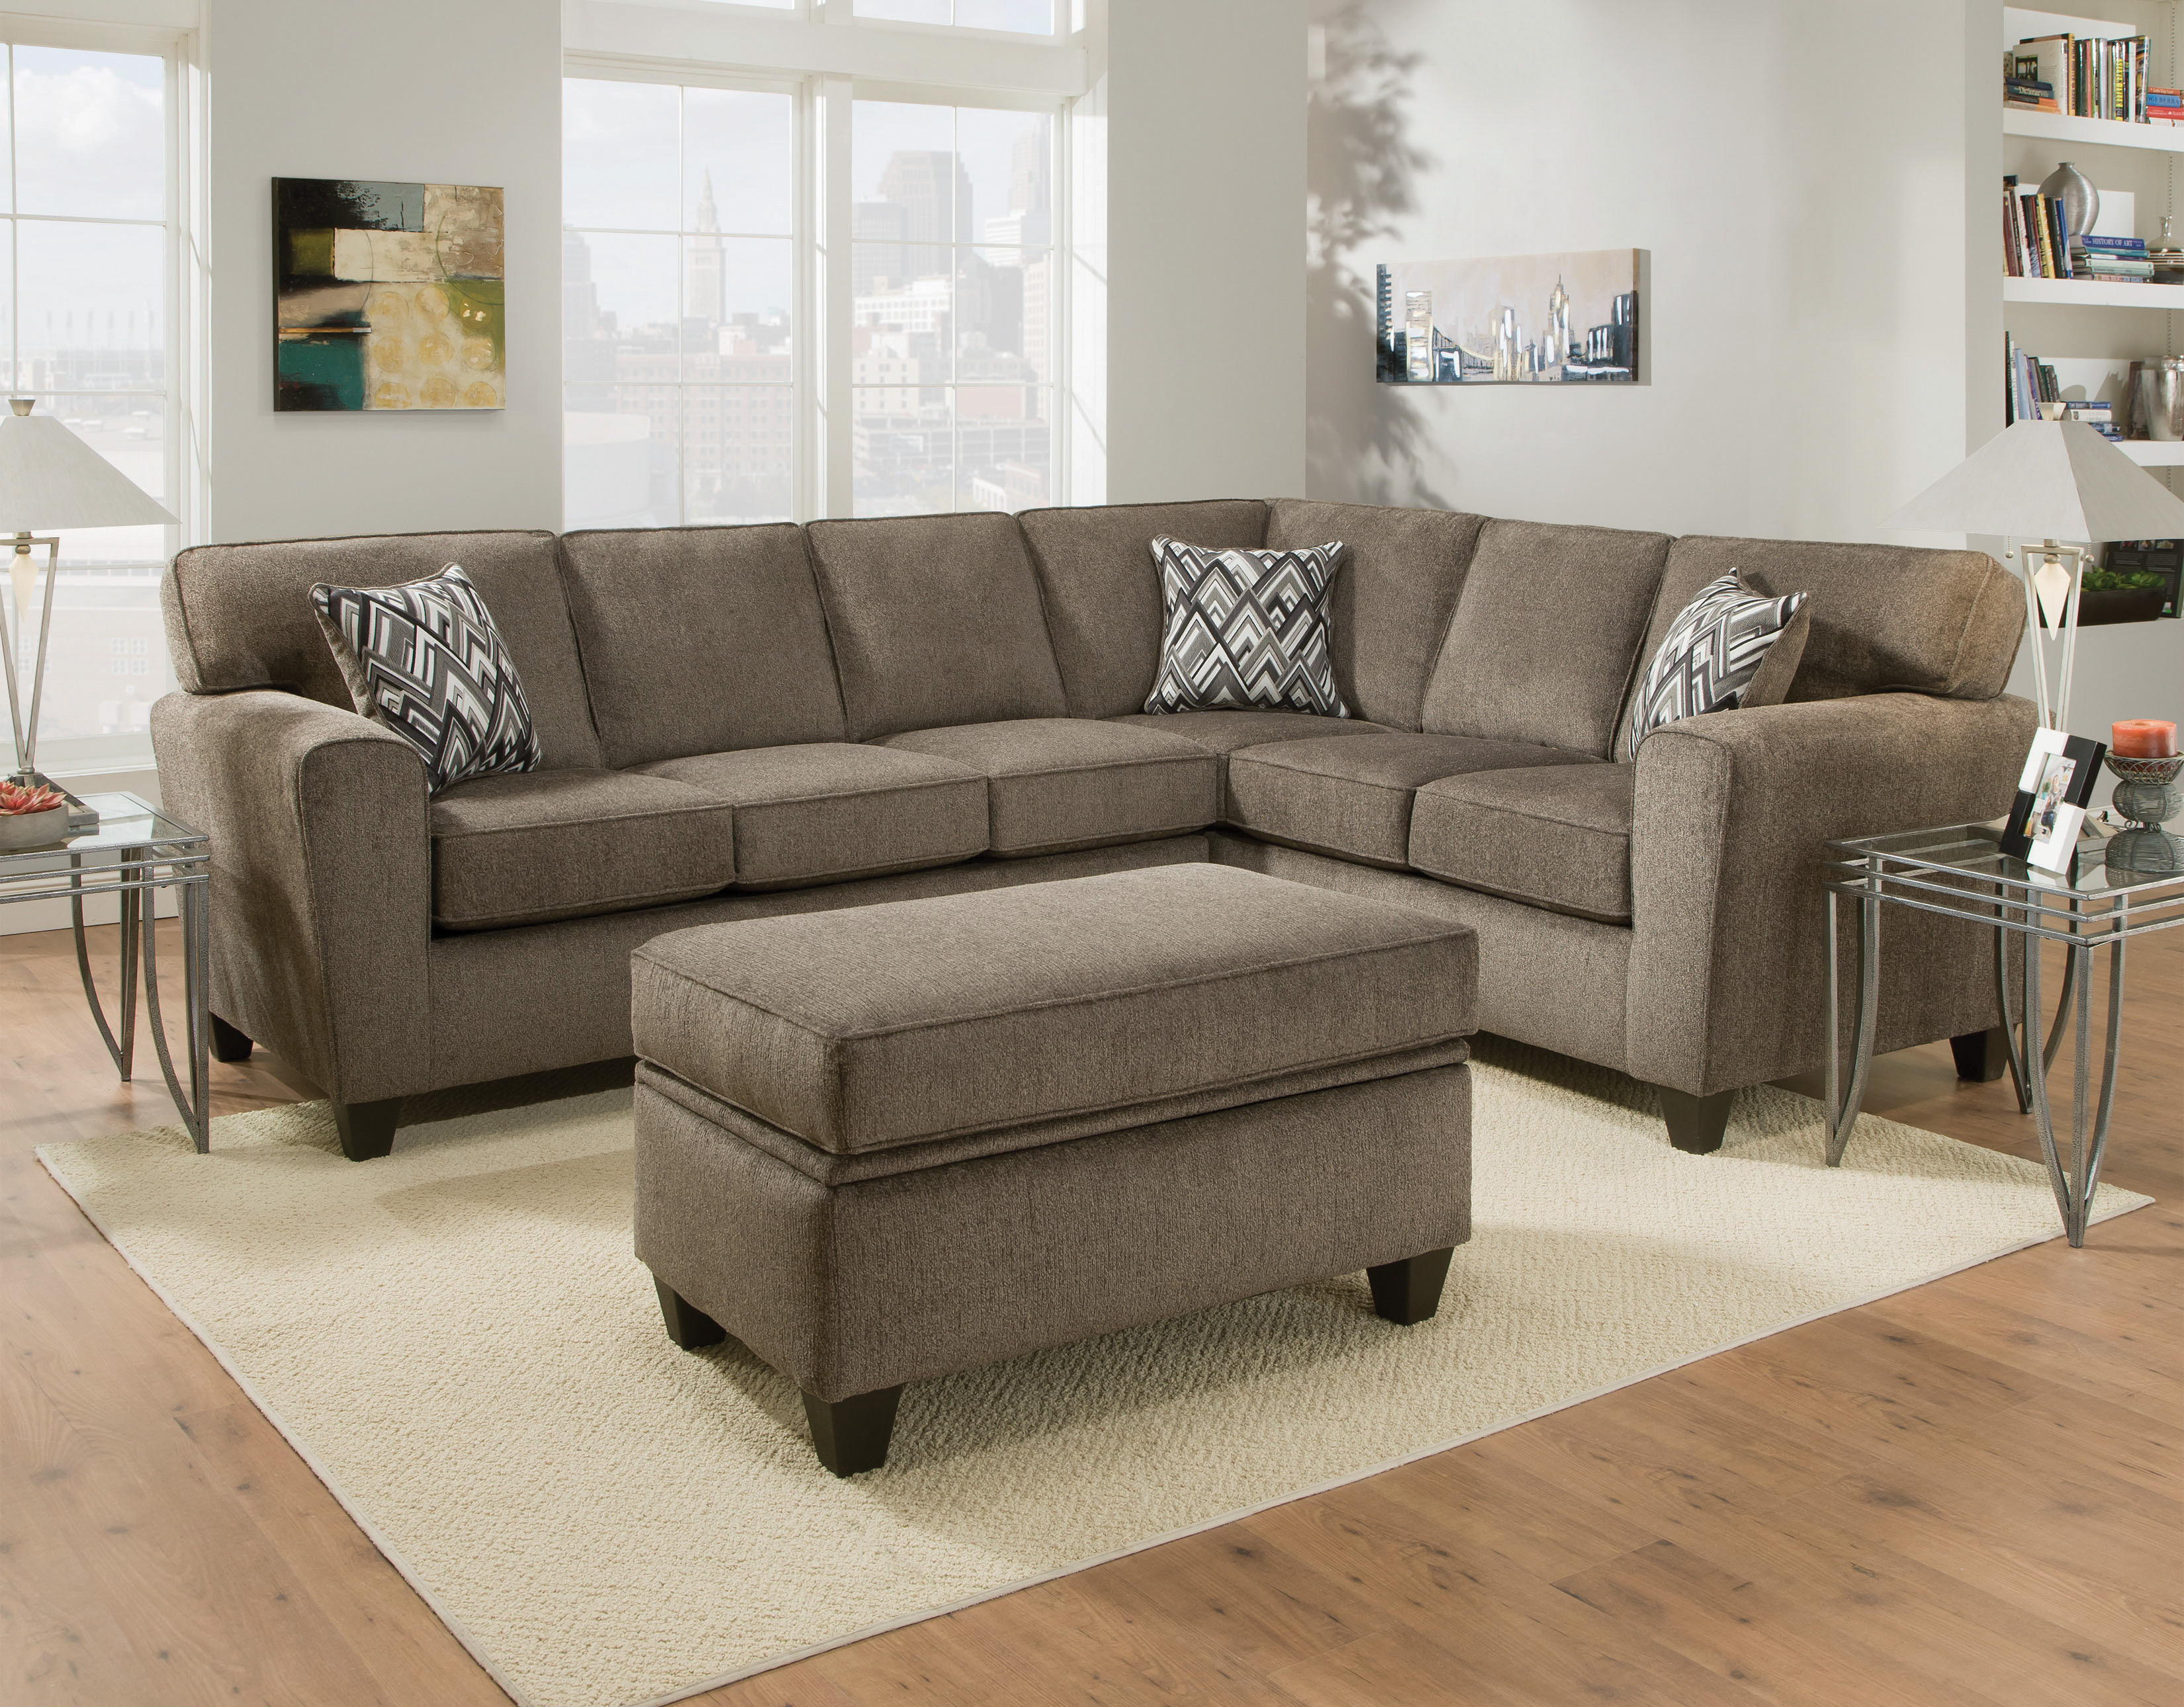 pewter sofa bed black leather with yellow pillows 3100 cornell sectional  awfco catalog site